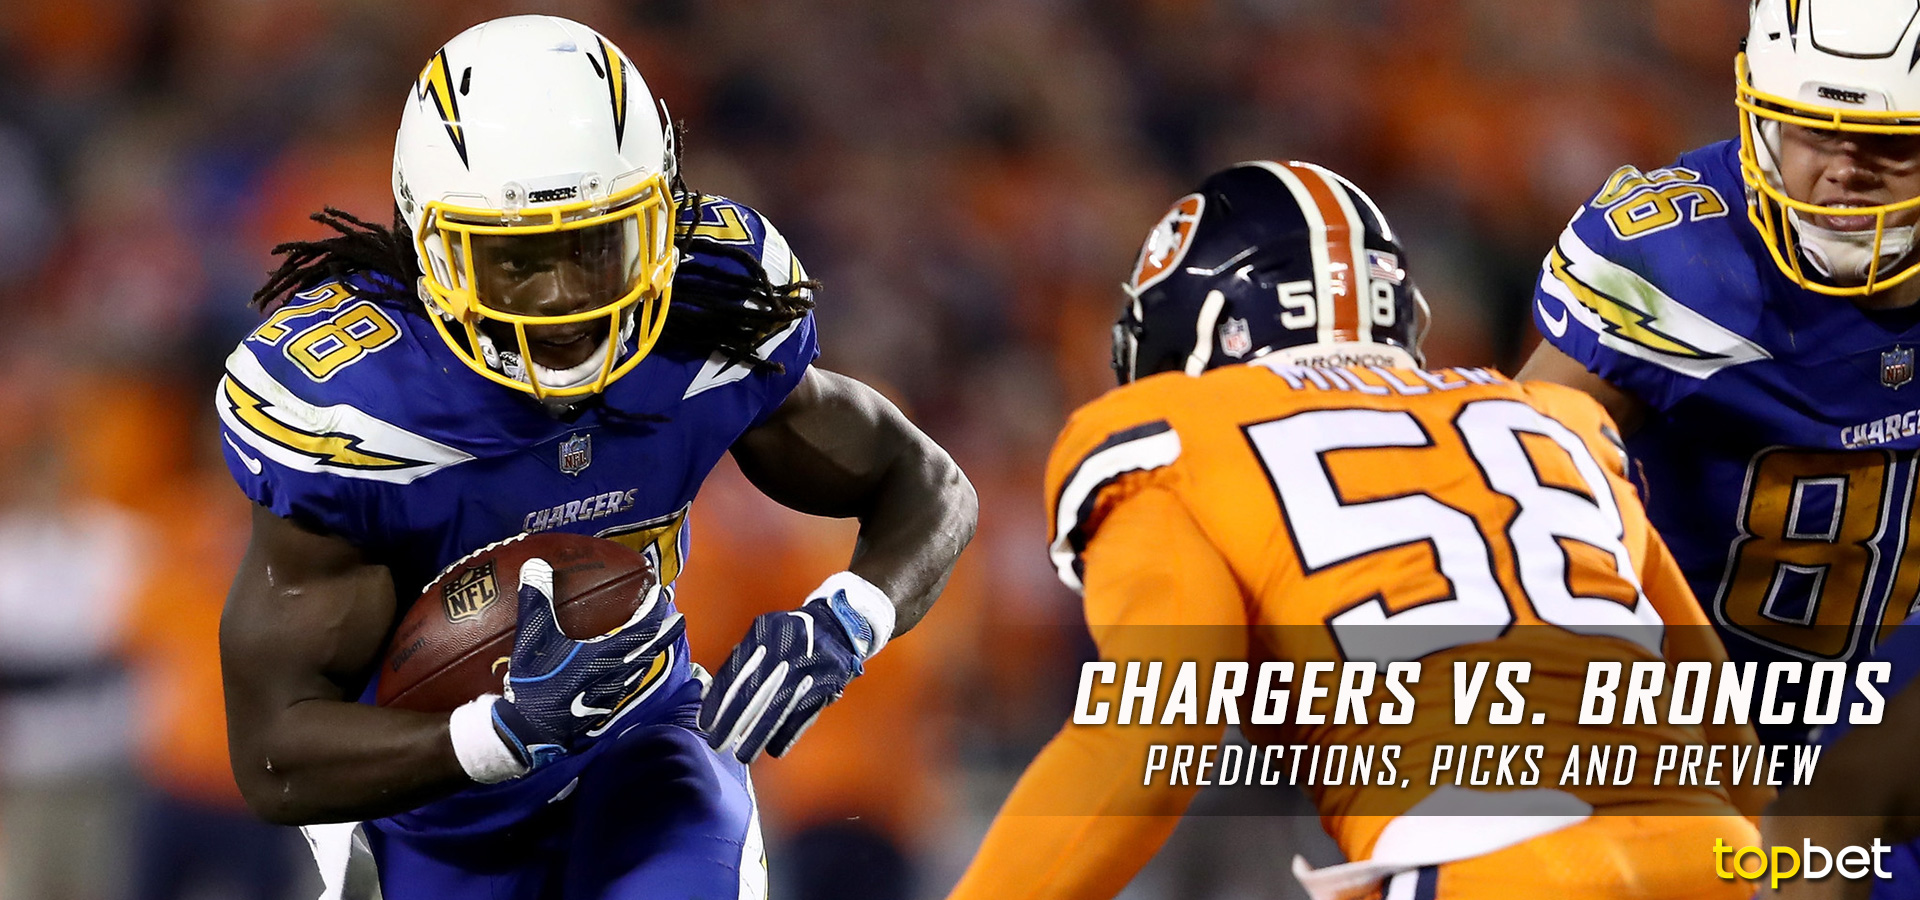 LA Chargers vs Denver Broncos Predictions, Picks and Preview